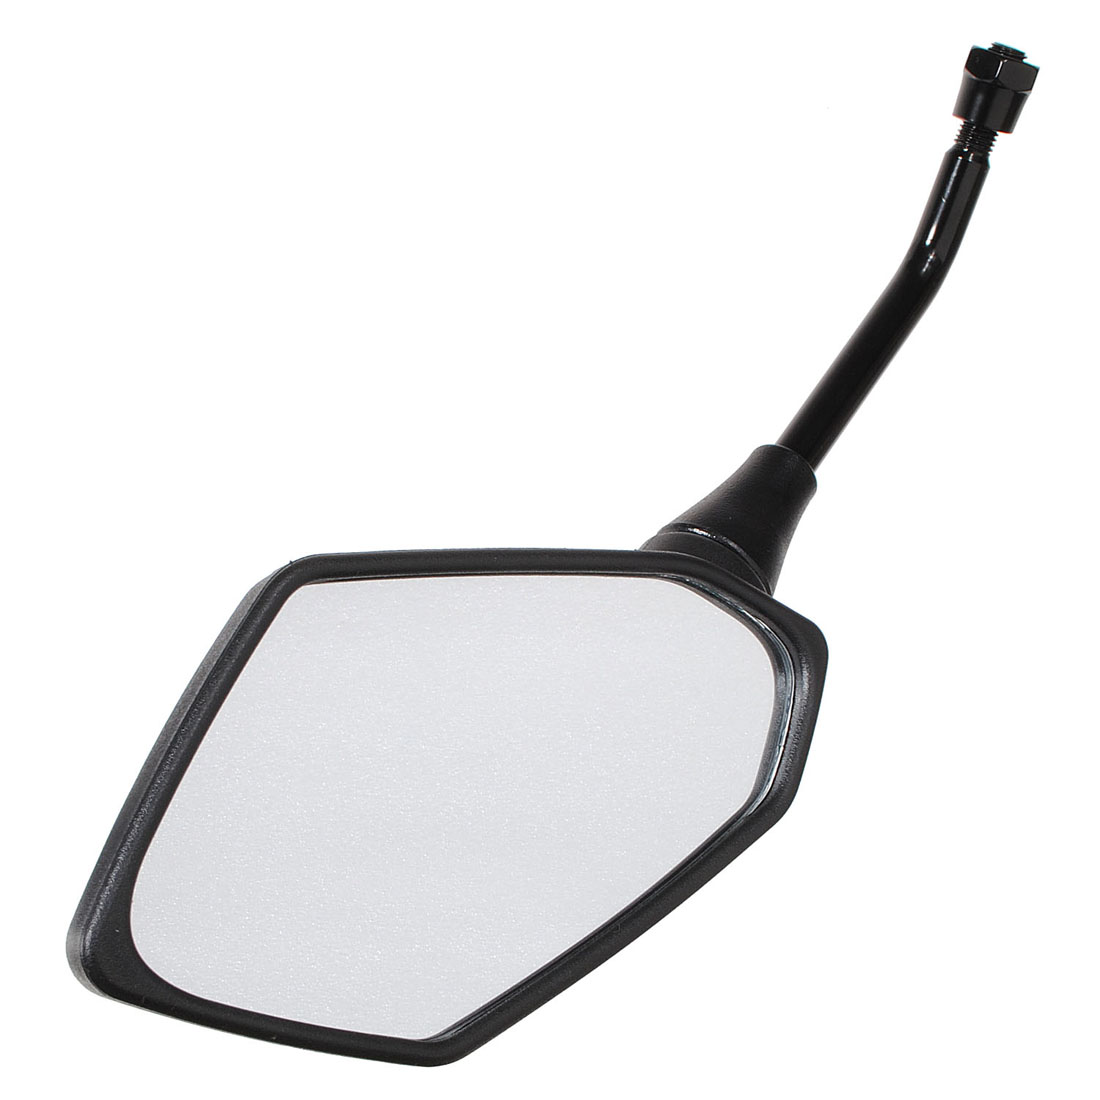 10mm Universal Diamond Motorcycle Black Rear View Mirror